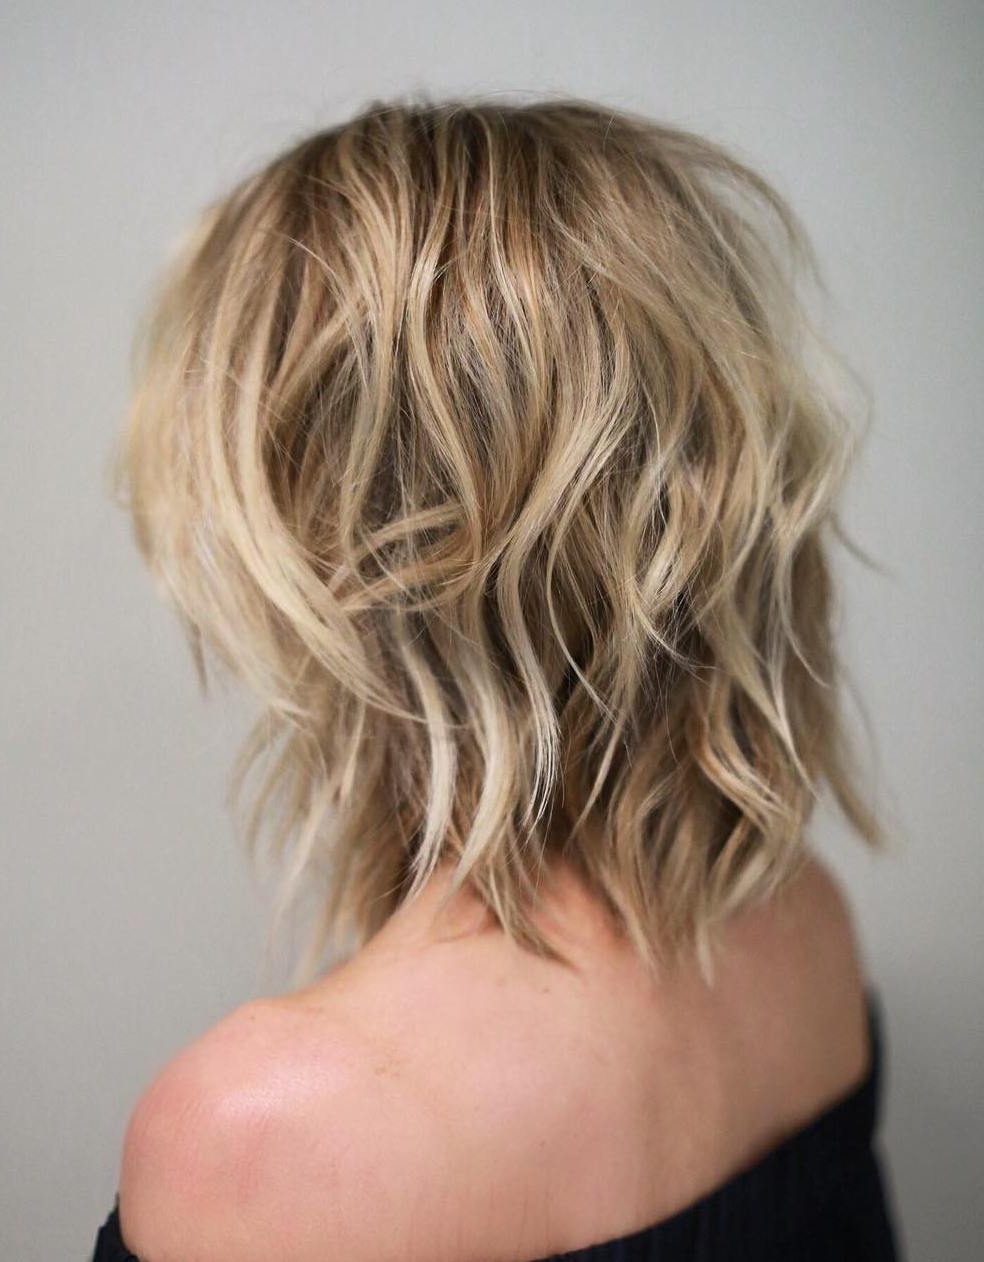 Shag Haircuts And Hairstyles In 2018 — Therighthairstyles Regarding Short To Medium Shaggy Hairstyles (View 3 of 25)